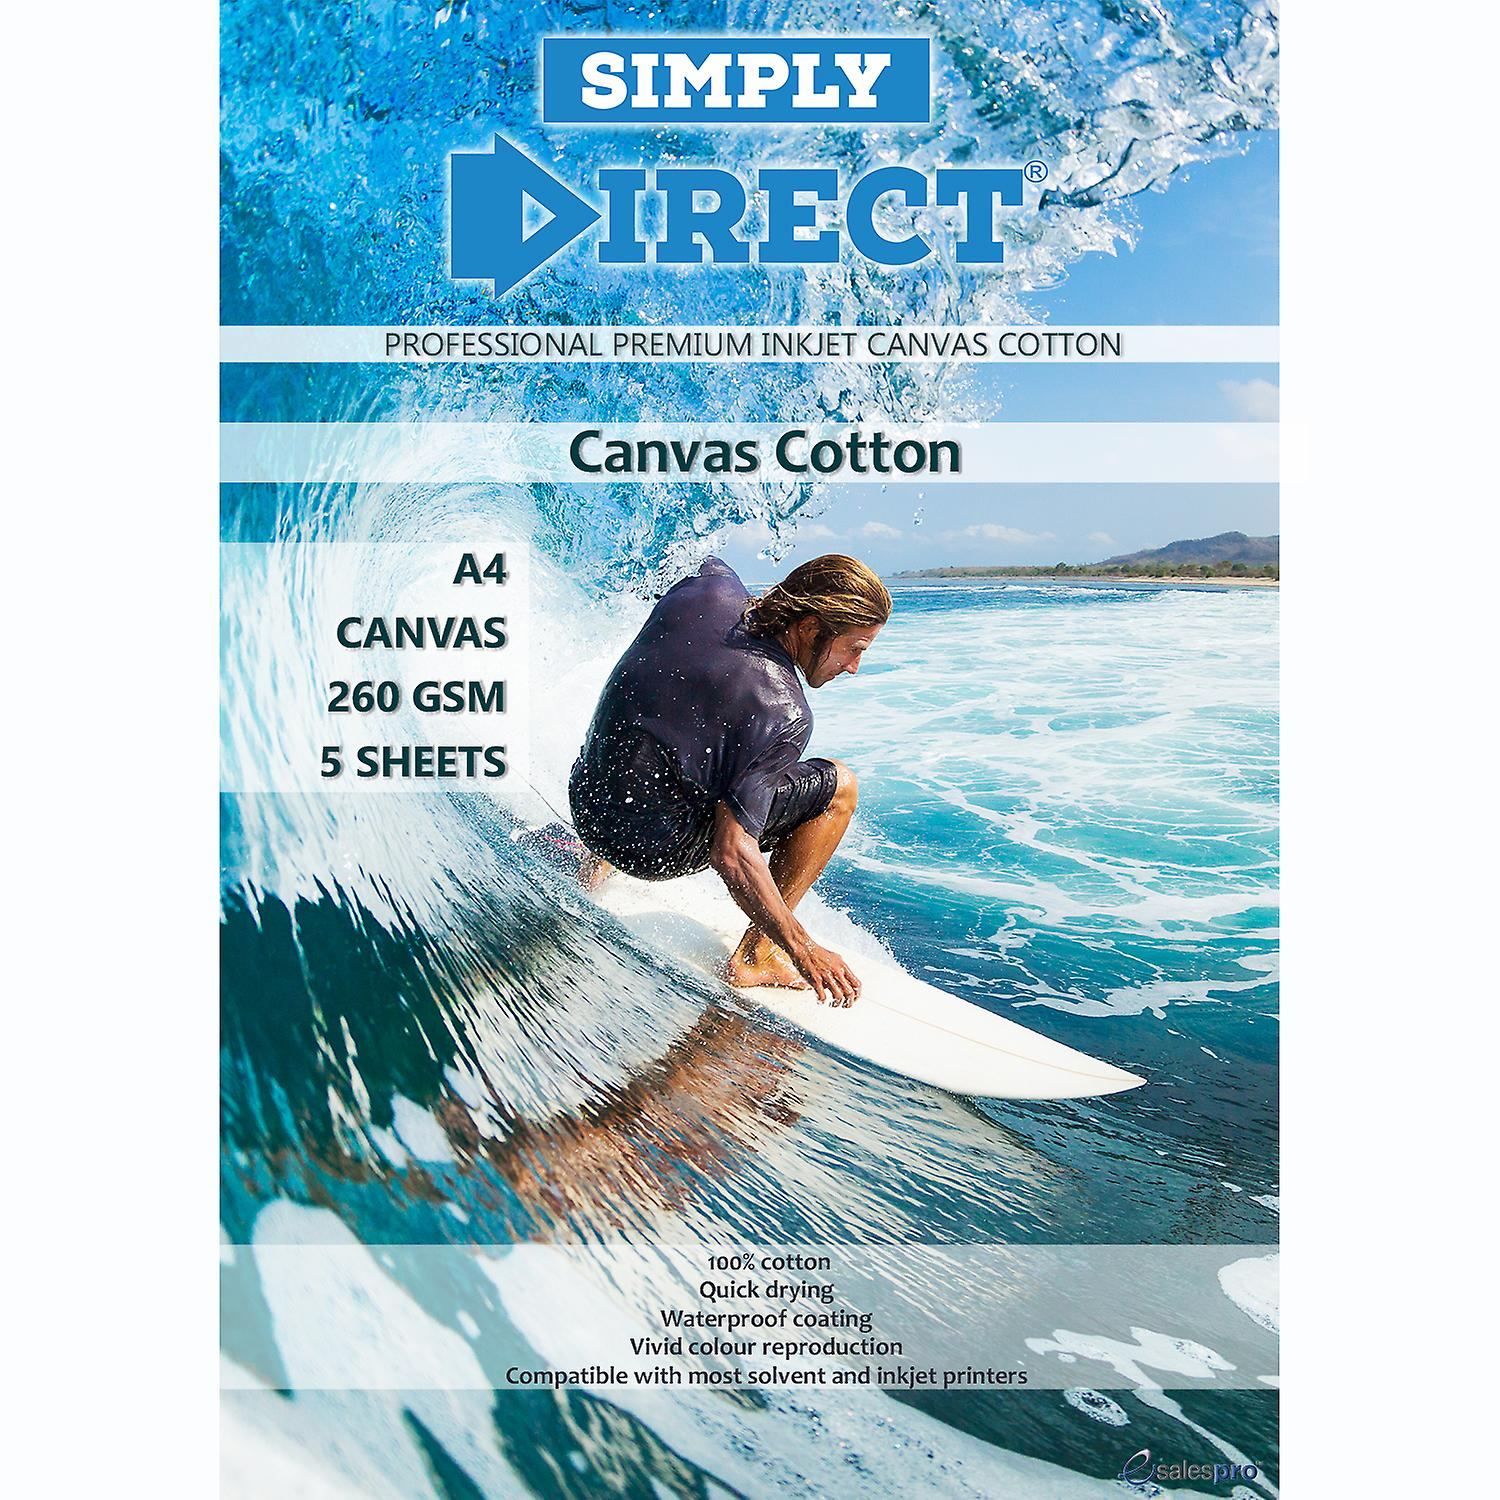 5 x Simply Direct A4 Cotton Canvas Printing Paper - 260gsm - Professional Premium Inkjet Paper